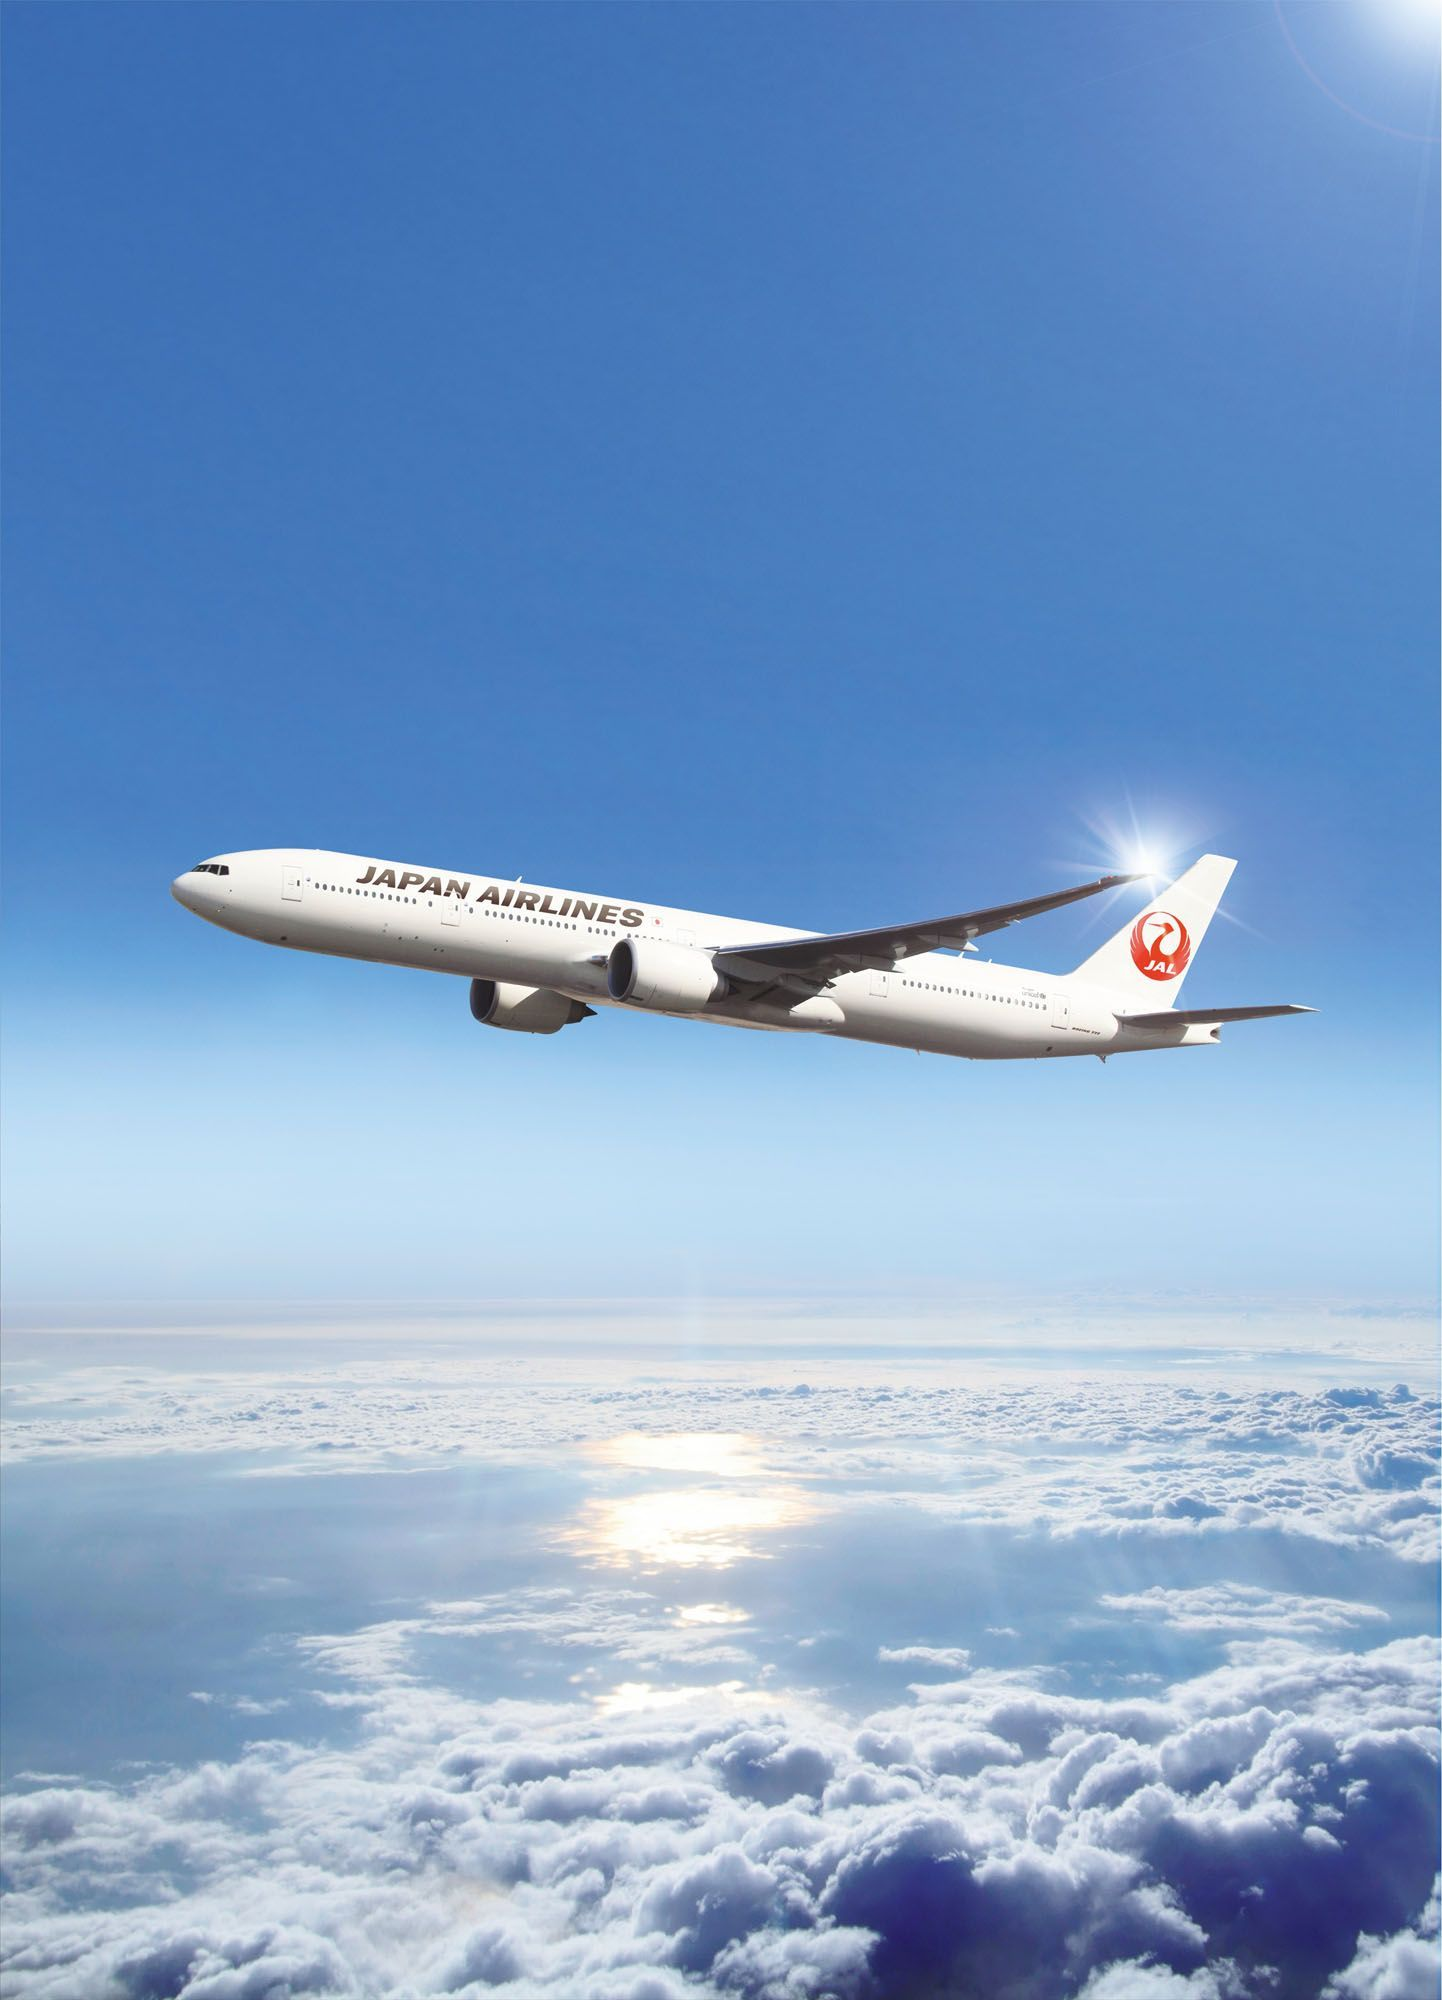 Japan Airlines Shares The Secret Of Achieving A Fuller Life Through Ikigai